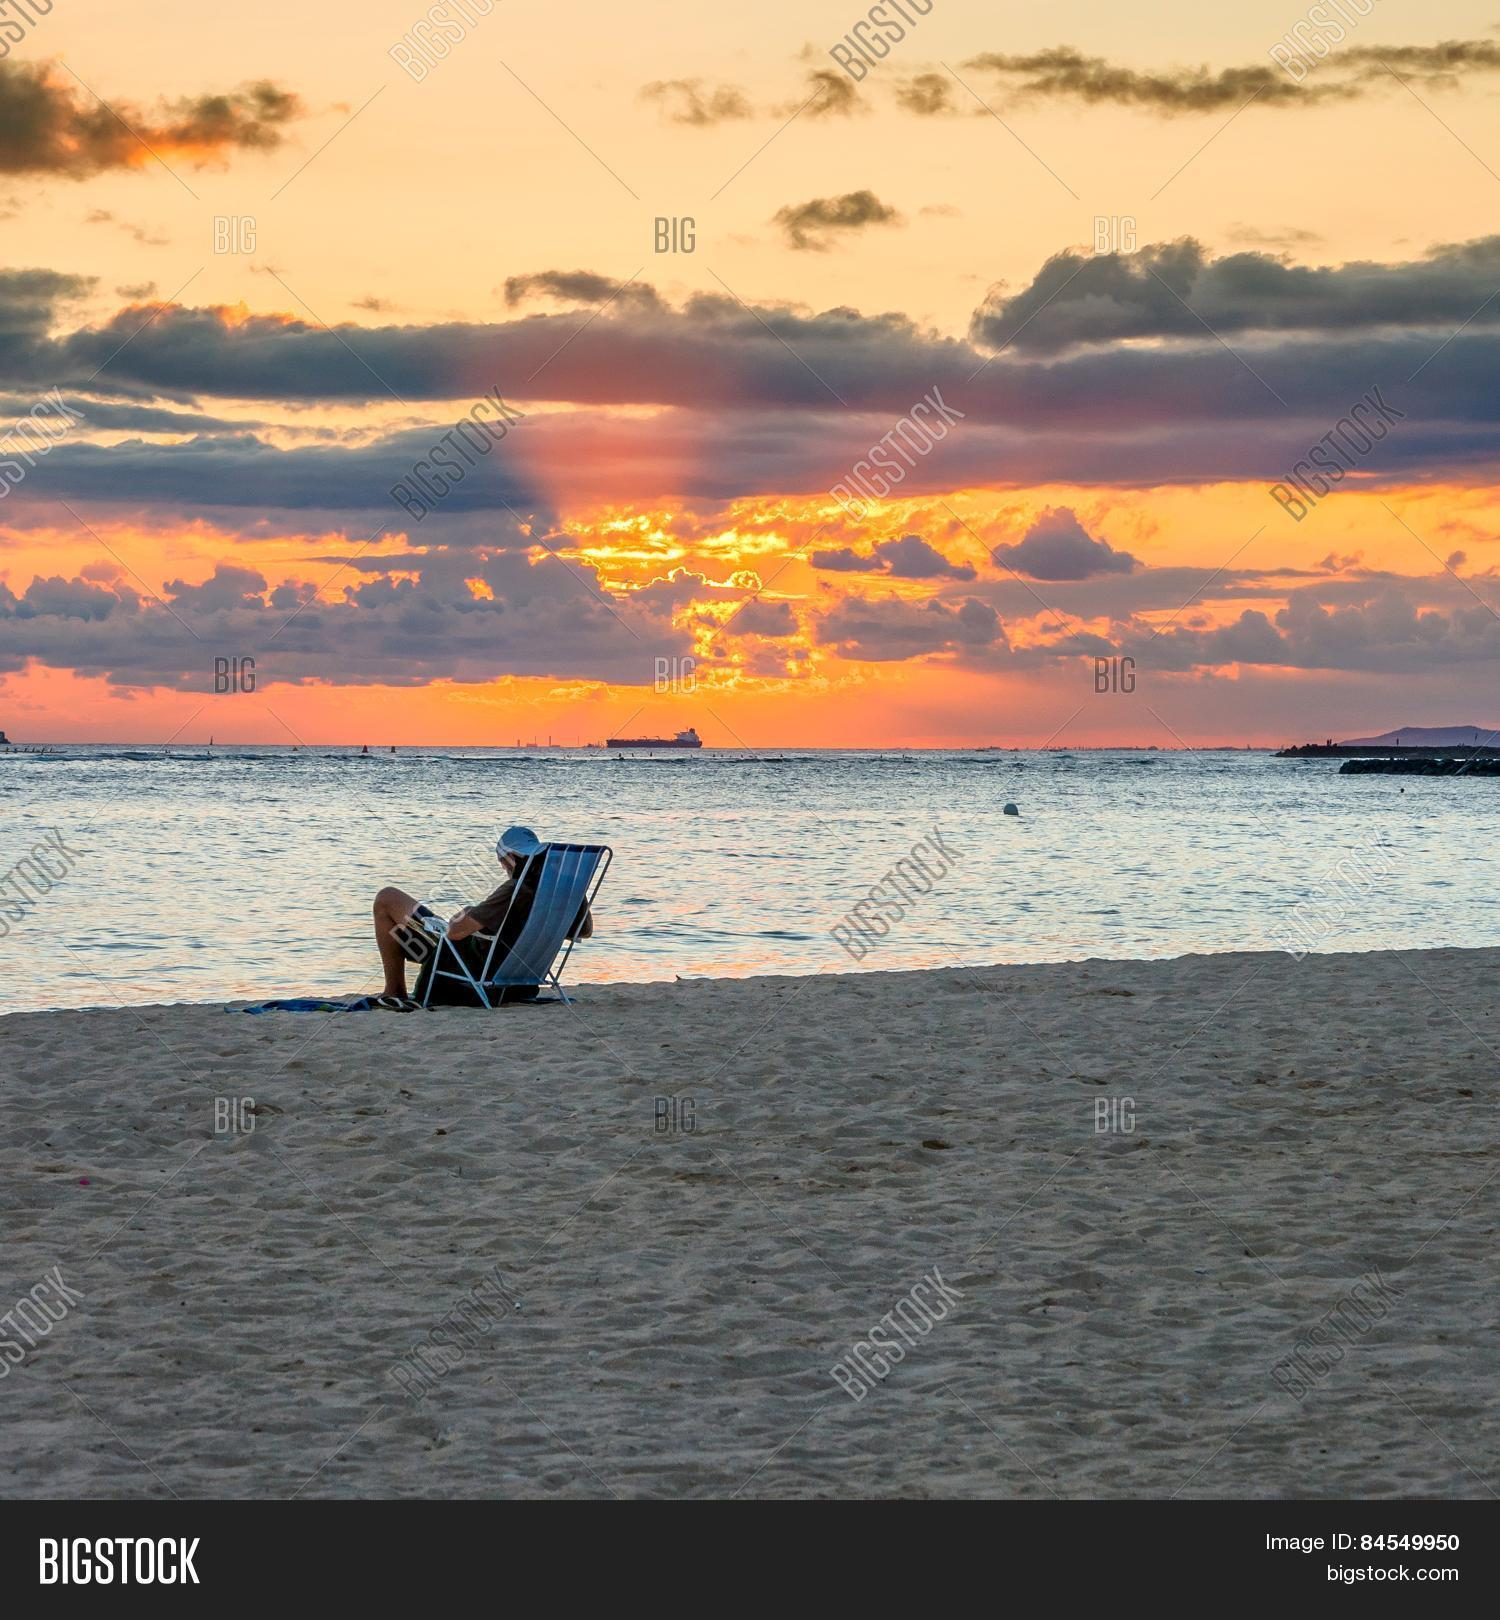 Sunset Waikiki Beach Image Photo Free Trial Bigstock